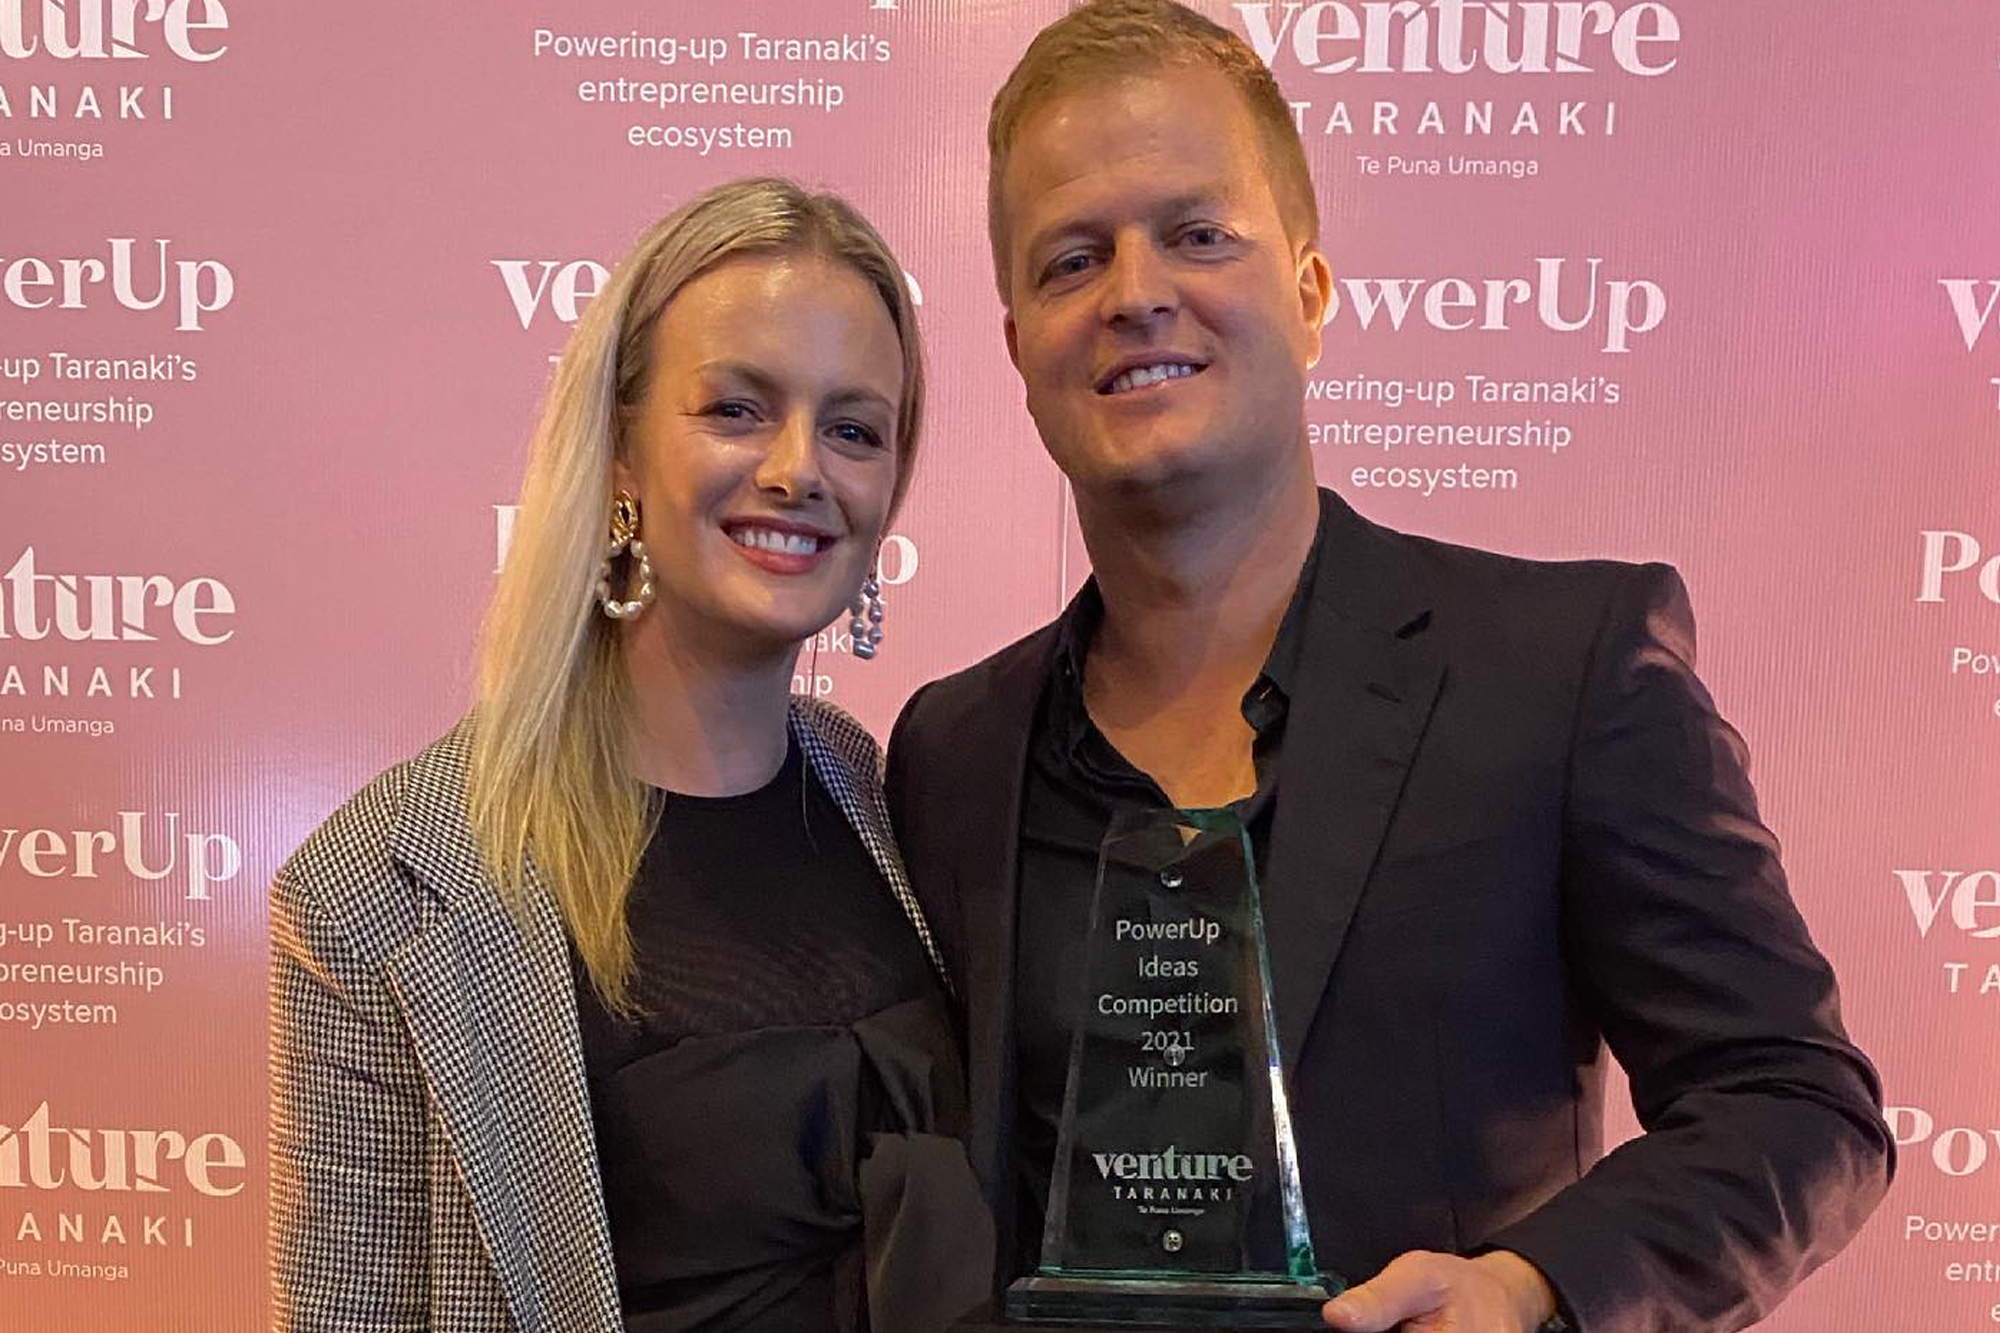 PowerUp Ideas Competition Winner Sol+Sea takes home $10,000